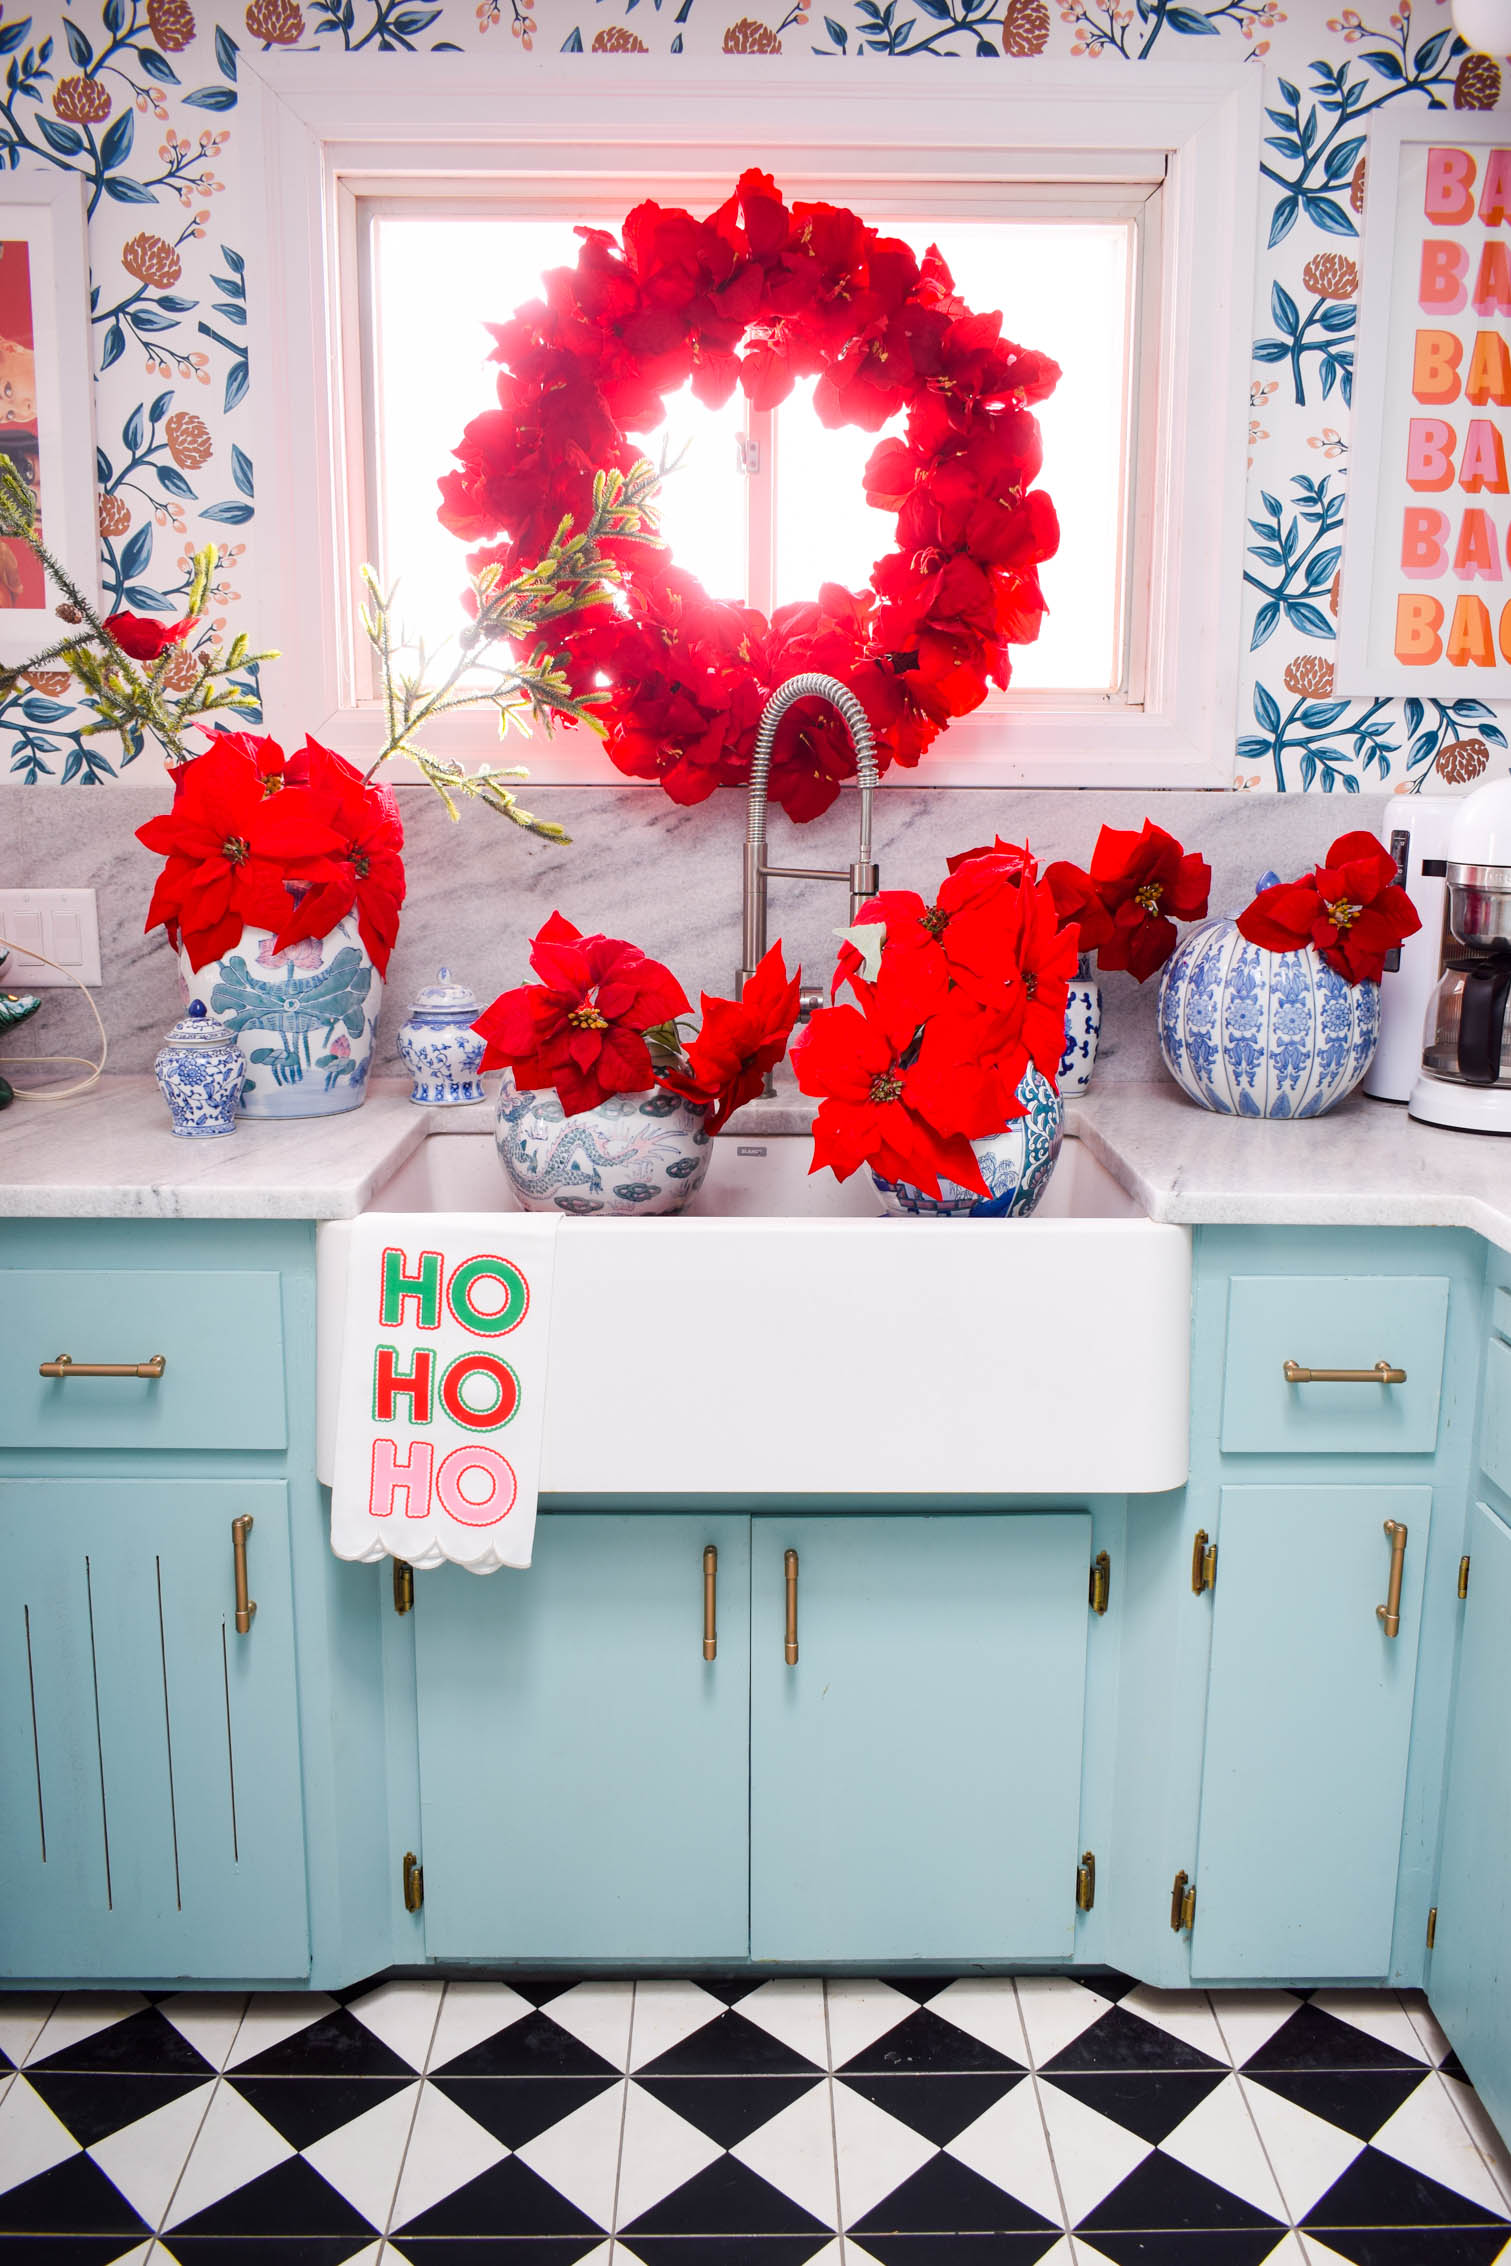 Colourful Christmas decor ideas come from a variety of different textures and materials. In our home, they make for a cozy and playful home this year.